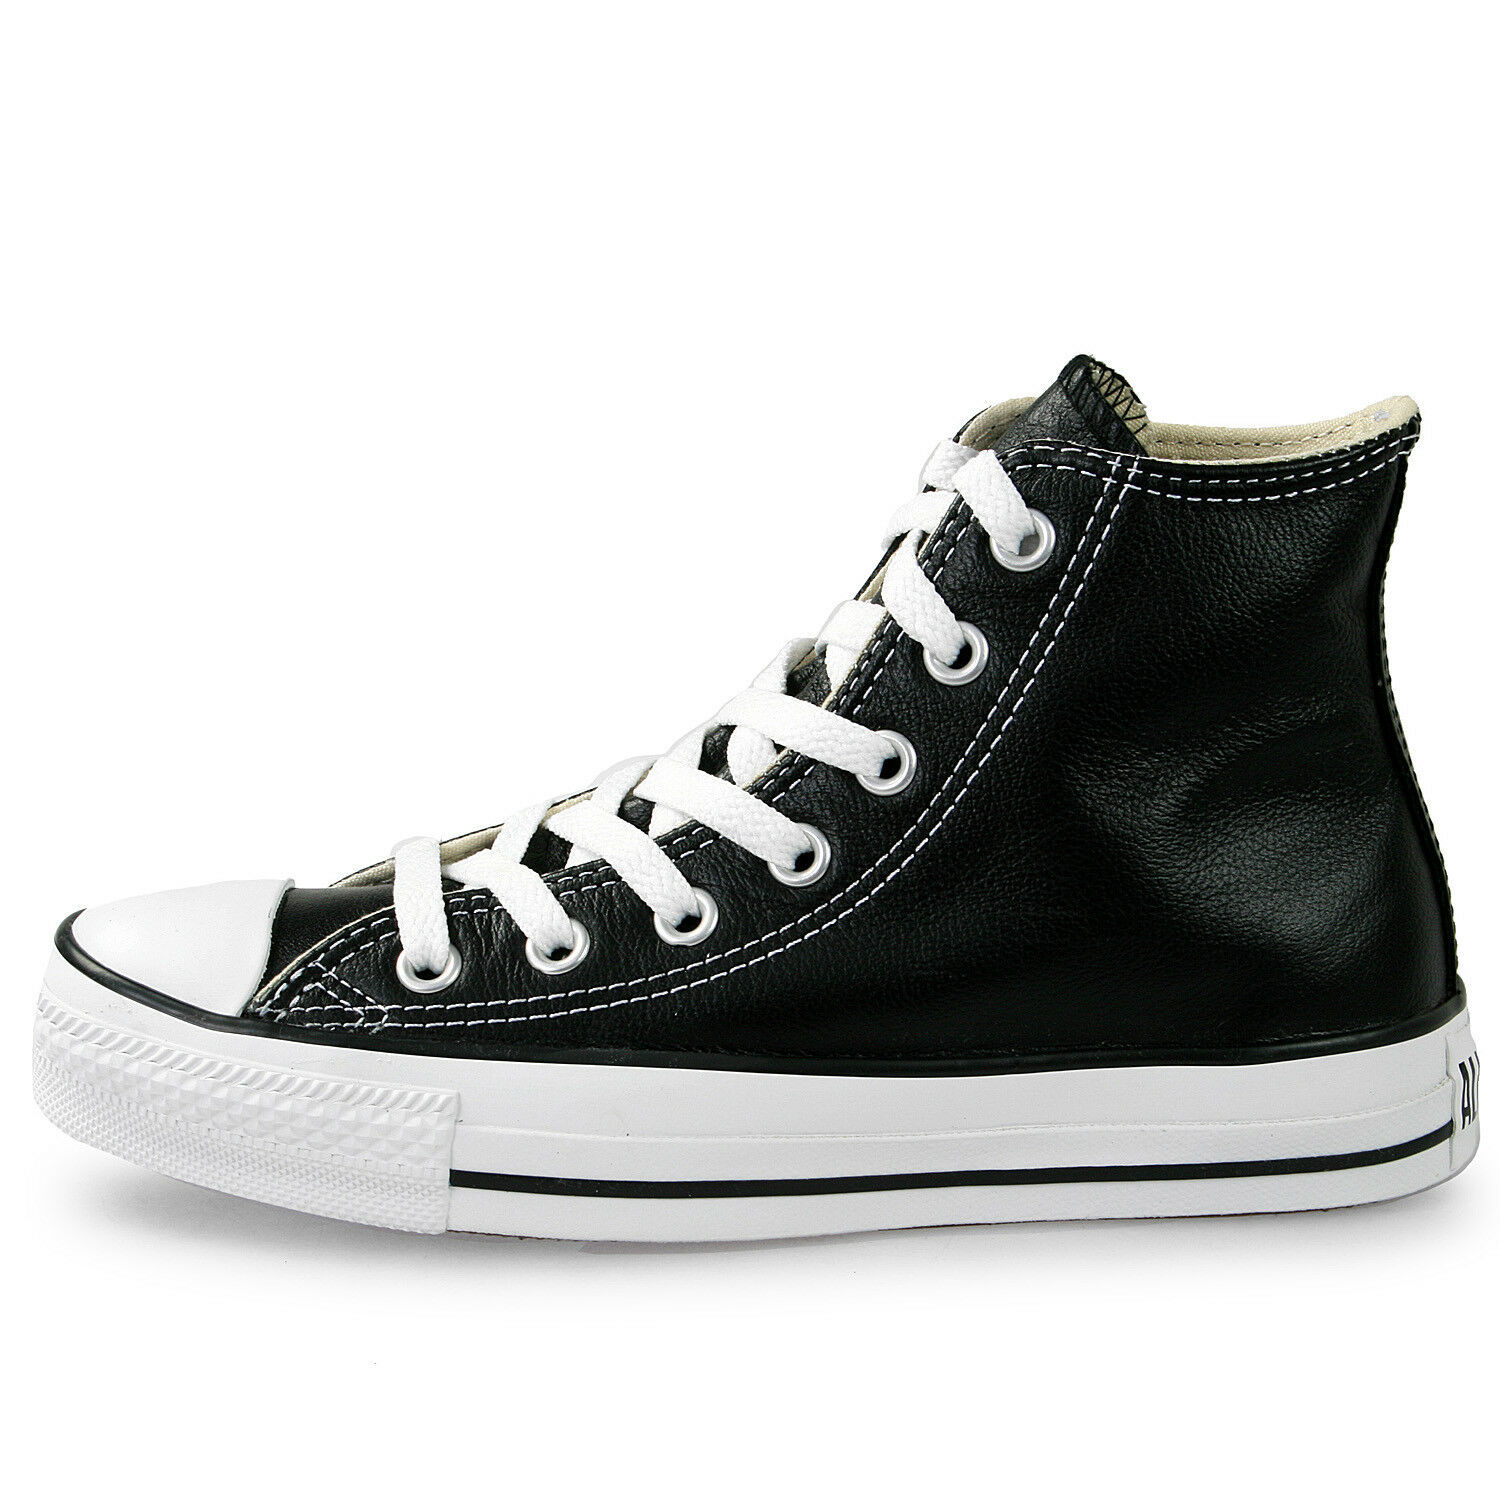 Primary image for Converse Unisex Chuck Taylor All Star HI Leather Shoes NEW AUTHENTIC Black 1S581